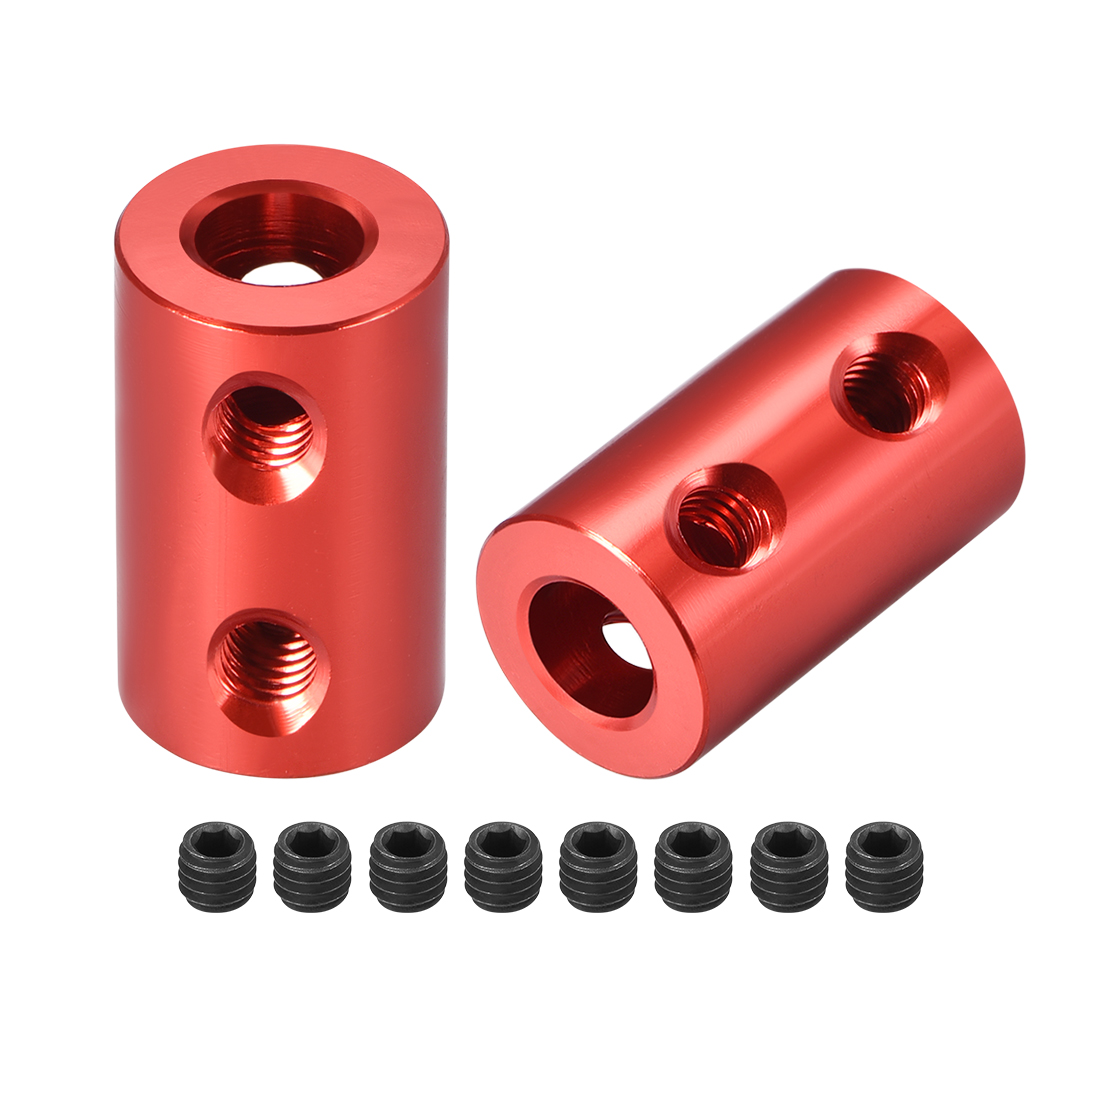 Shaft Coupling 6mm to 6mm Bore L20xD12 Robot Motor Wheel Rigid Coupler Red 2 PCS